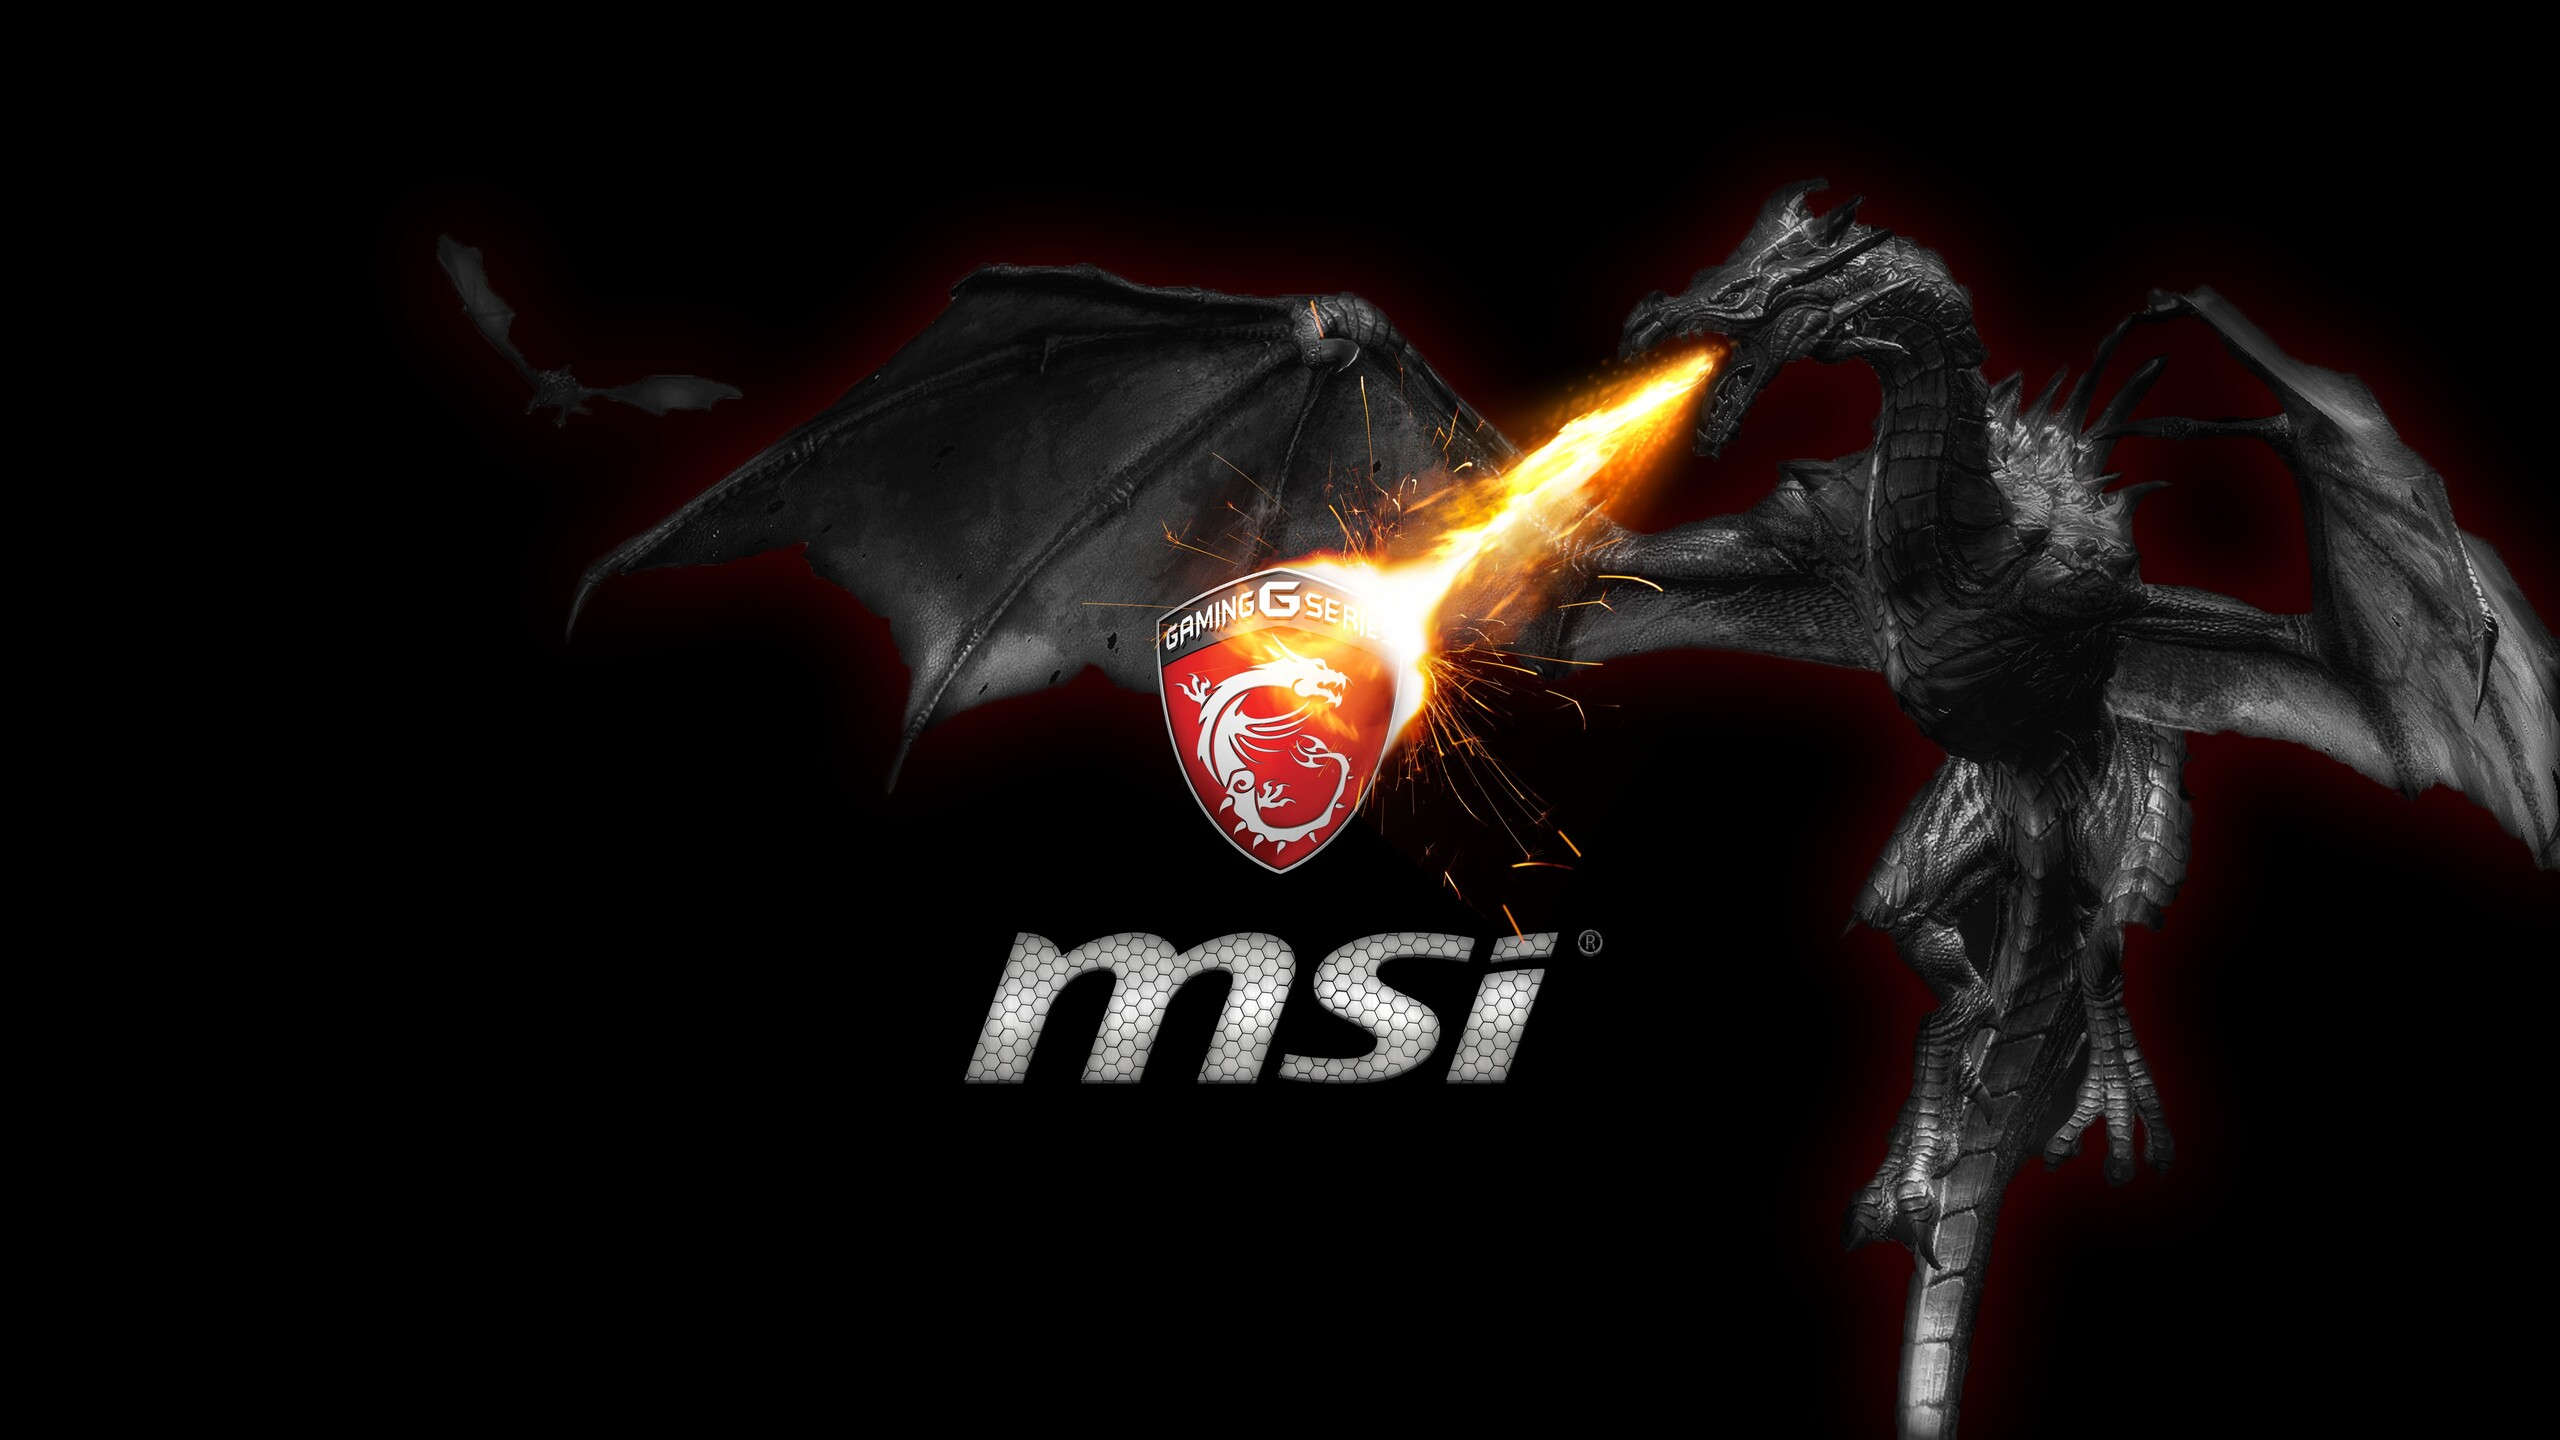 2560x1440 msi 1440p resolution hd 4k wallpapers images backgrounds photos and pictures - Msi logo wallpaper ...